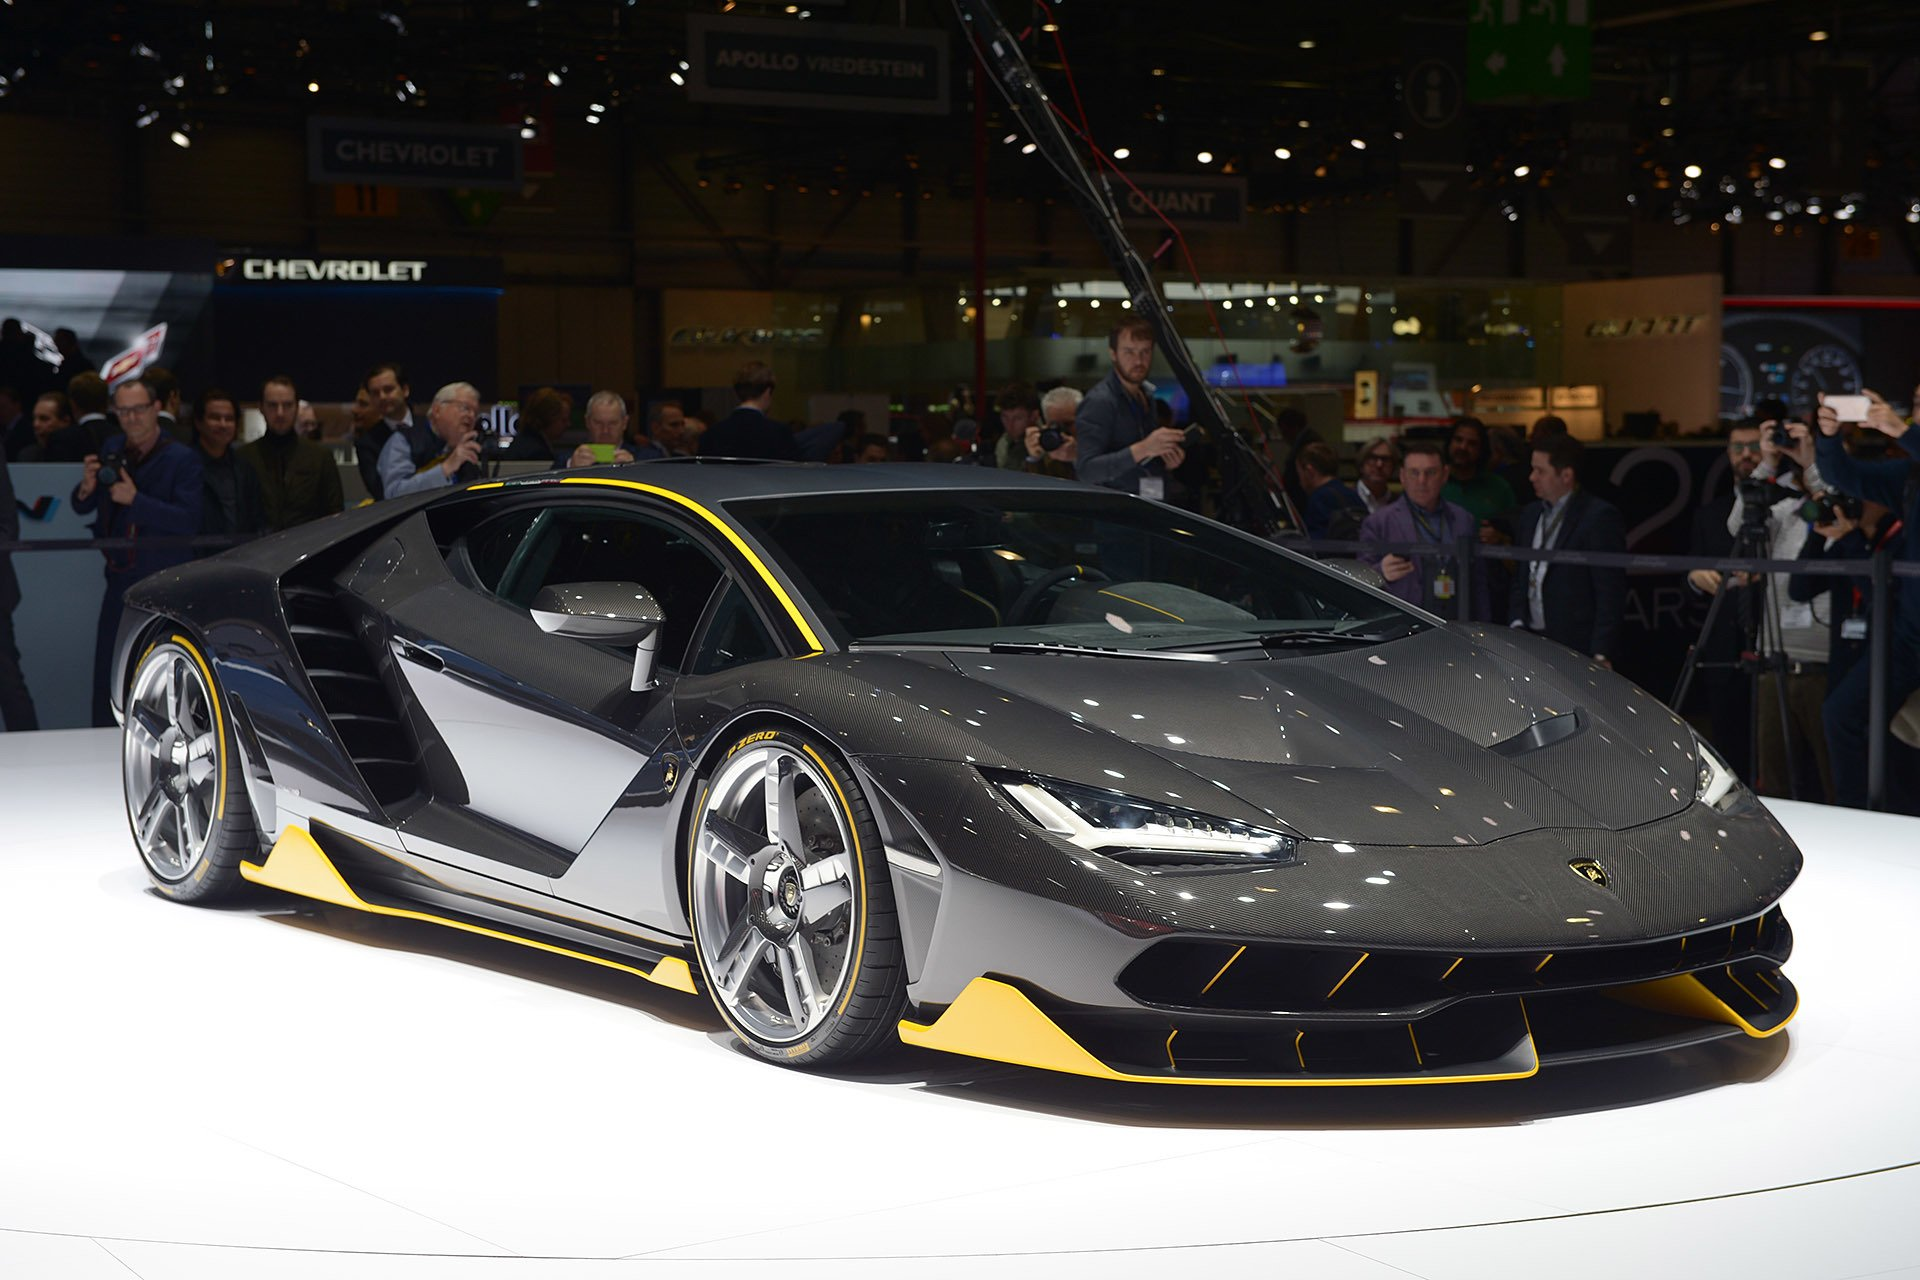 Lamborghini Centenario The Most Powerful And Extreme Lambo